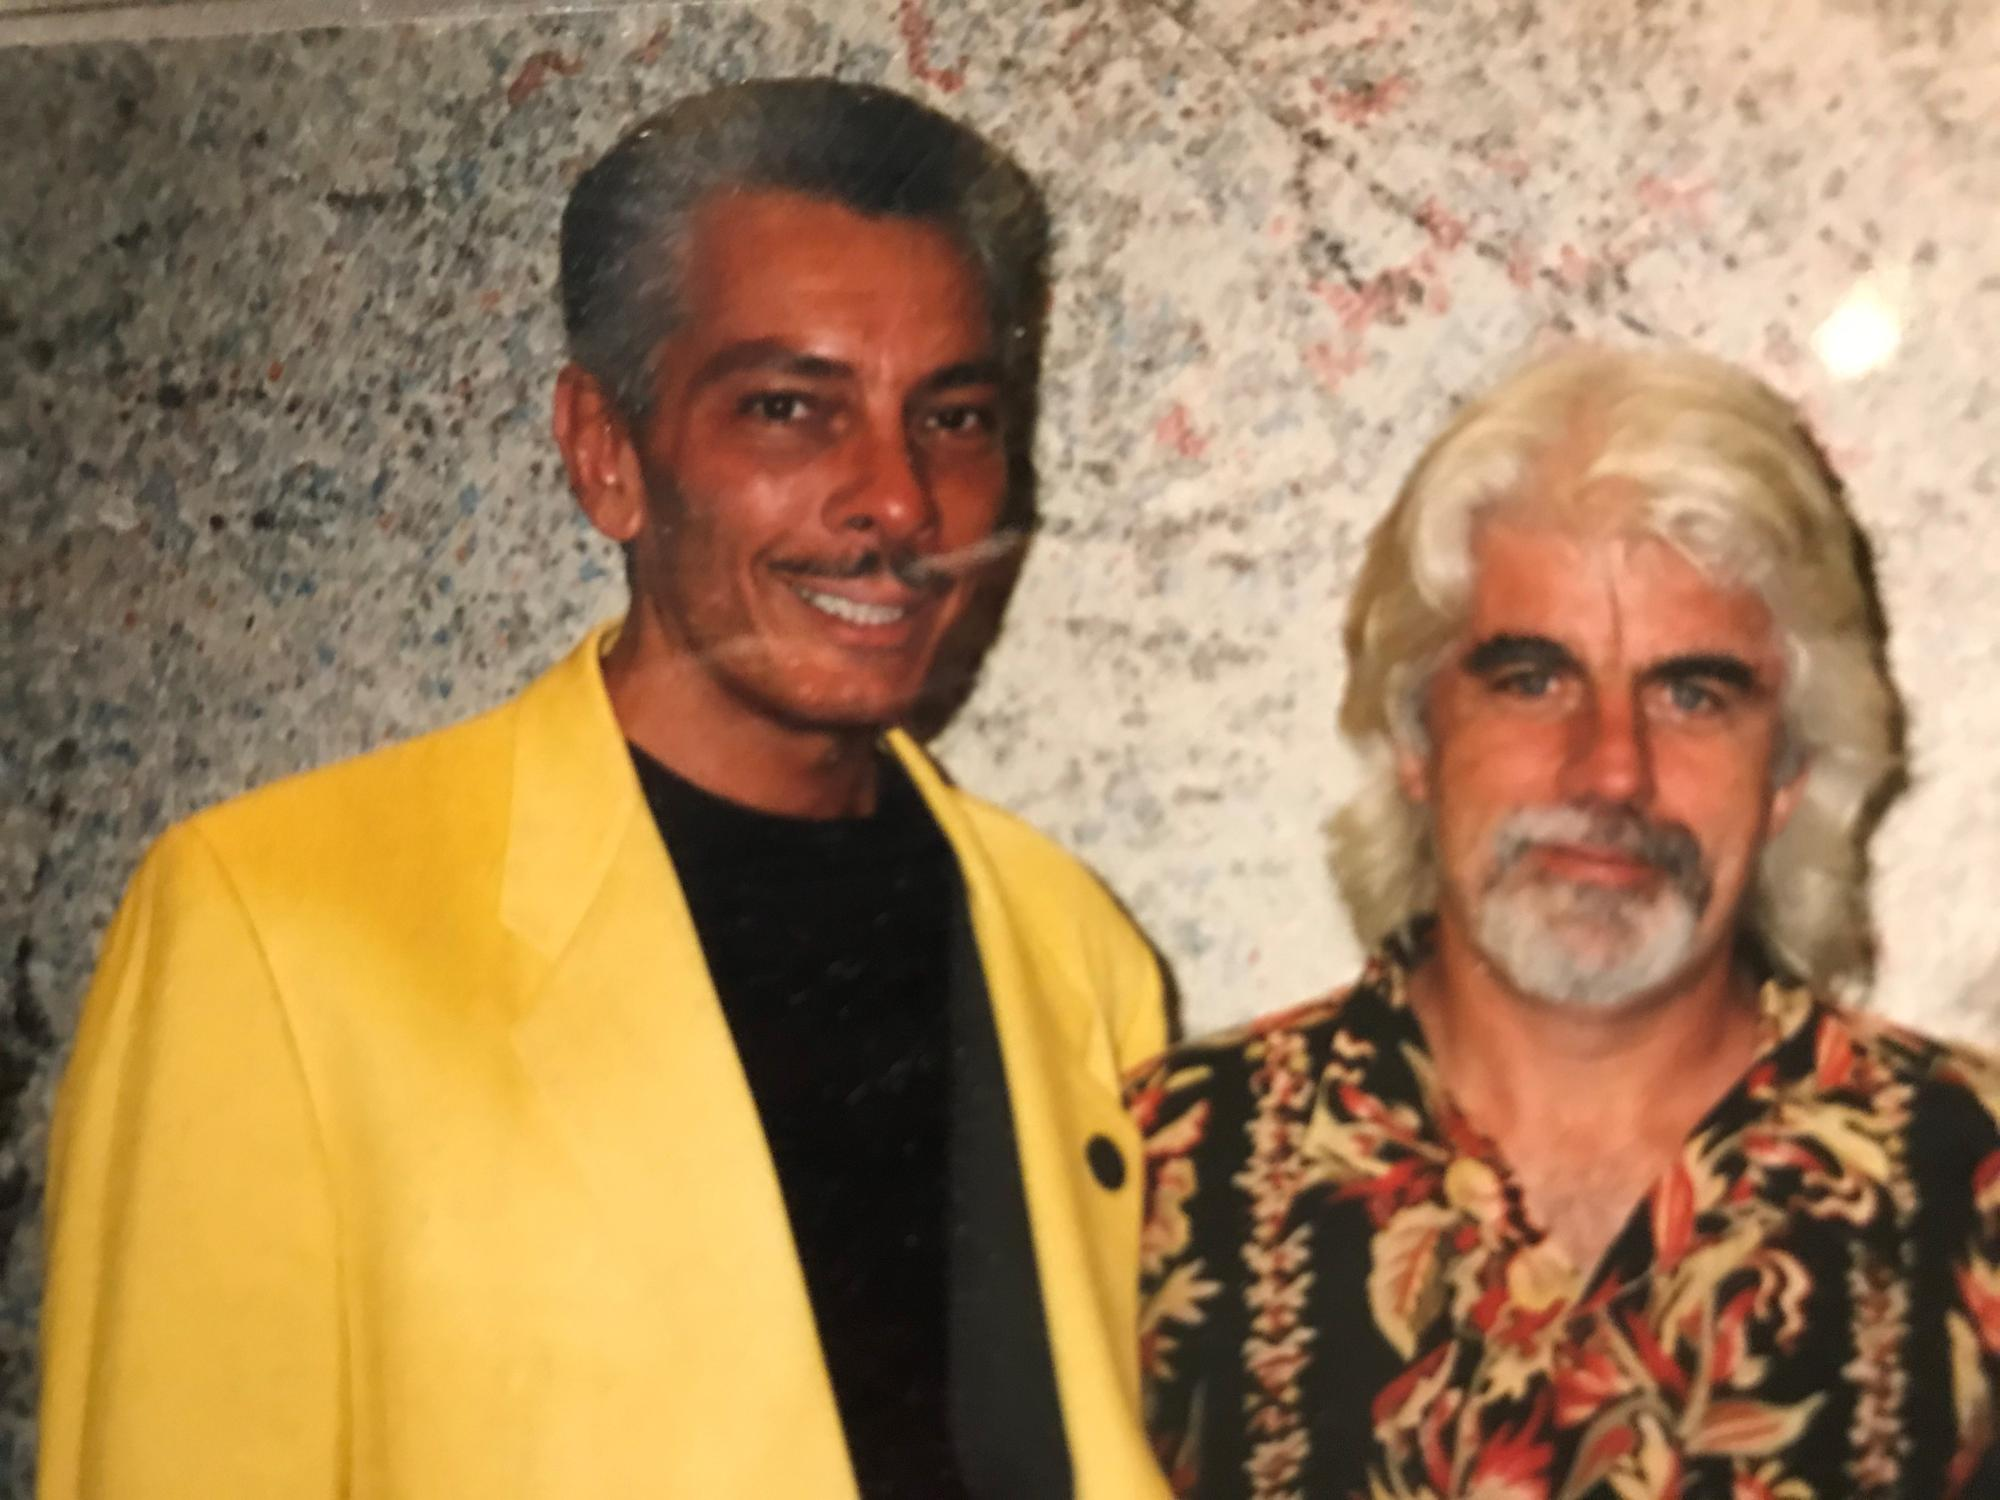 Mike_McVay_and_Michael_McDonald.jpg